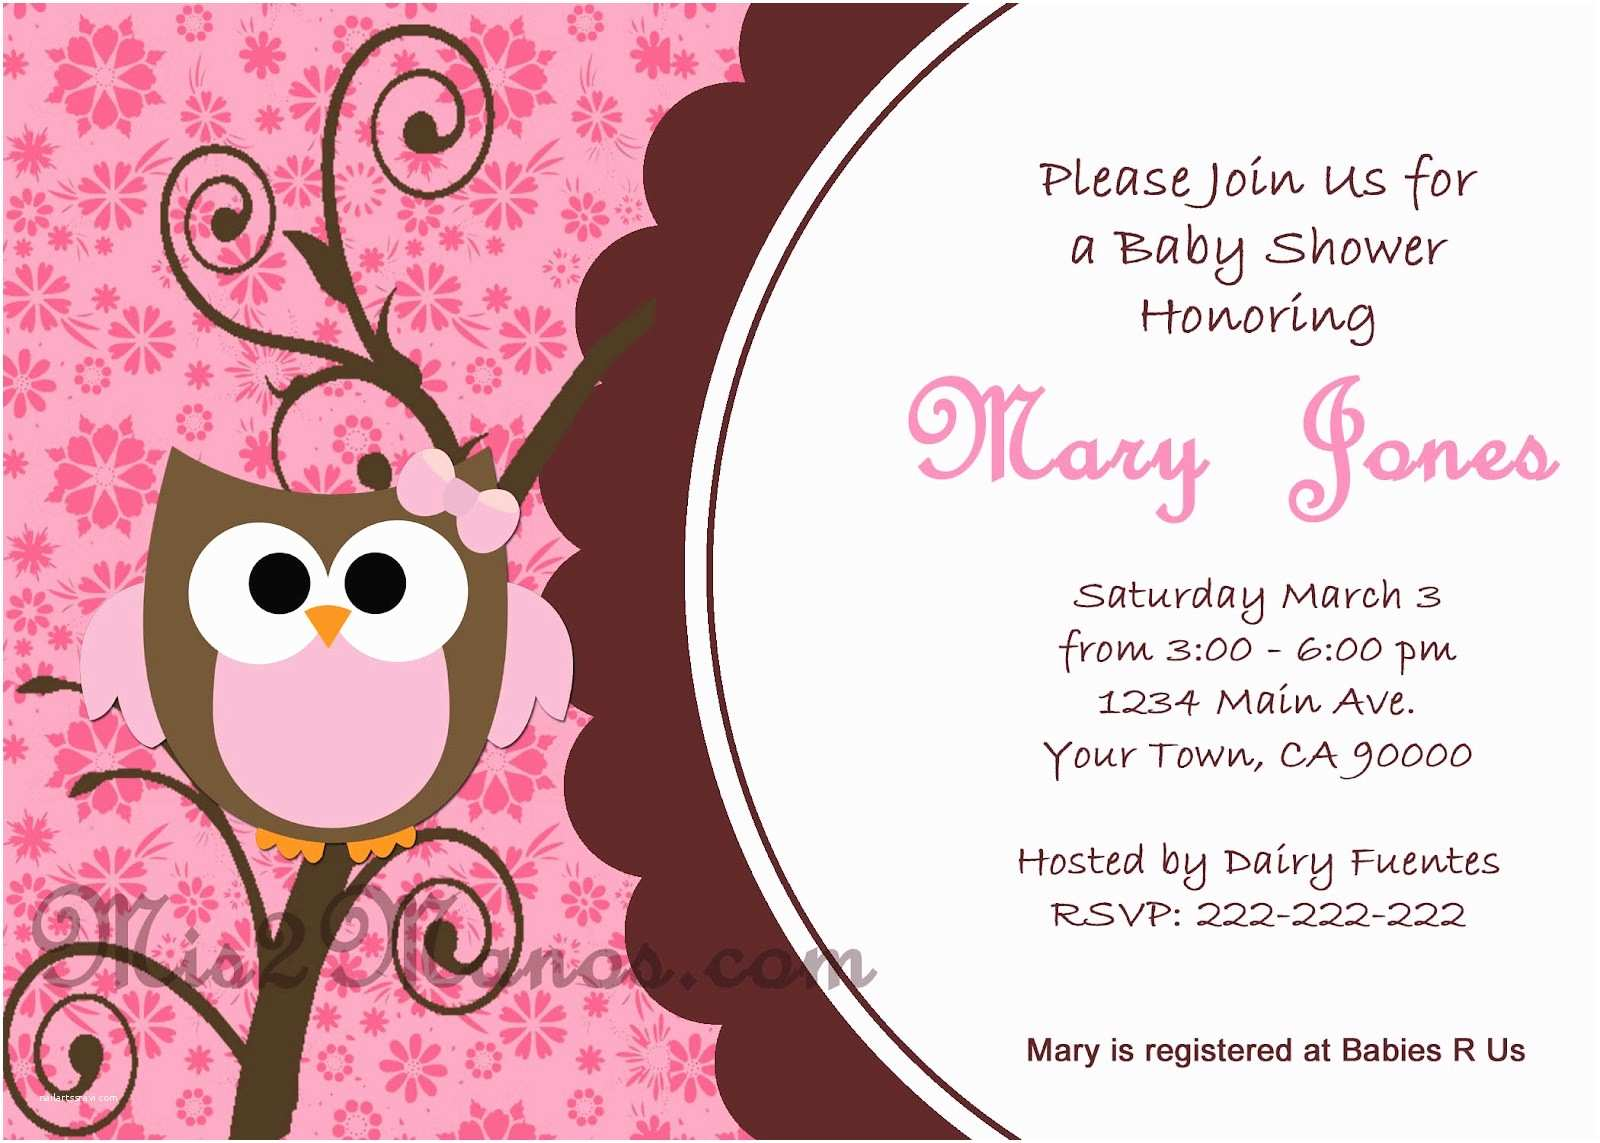 Free Printable Owl Baby Shower Invitations Mis 2 Manos Made by My Hands March 2012